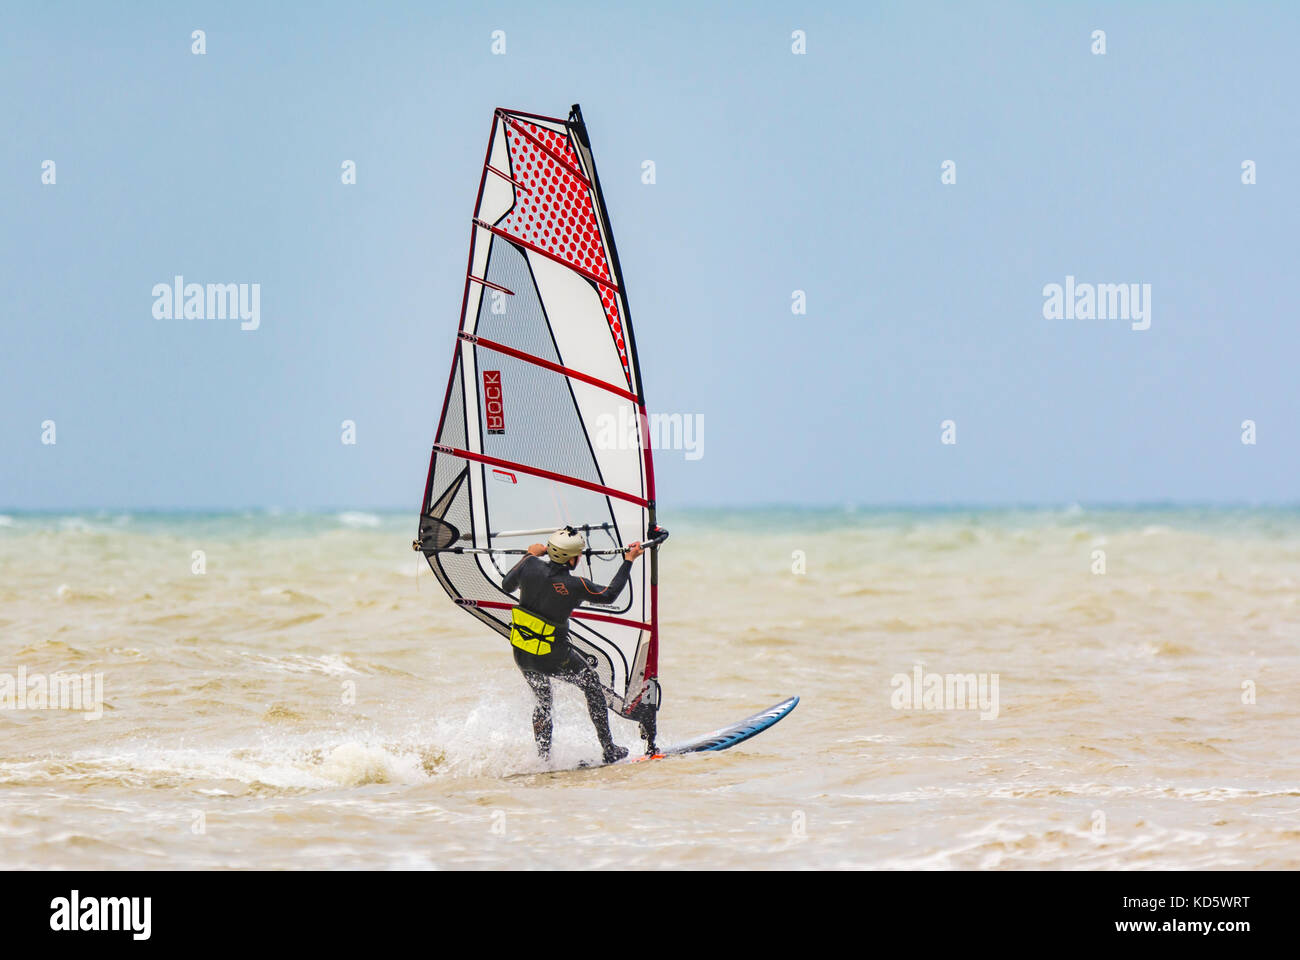 Windsurfer on the sea on a windy day in the UK. - Stock Image